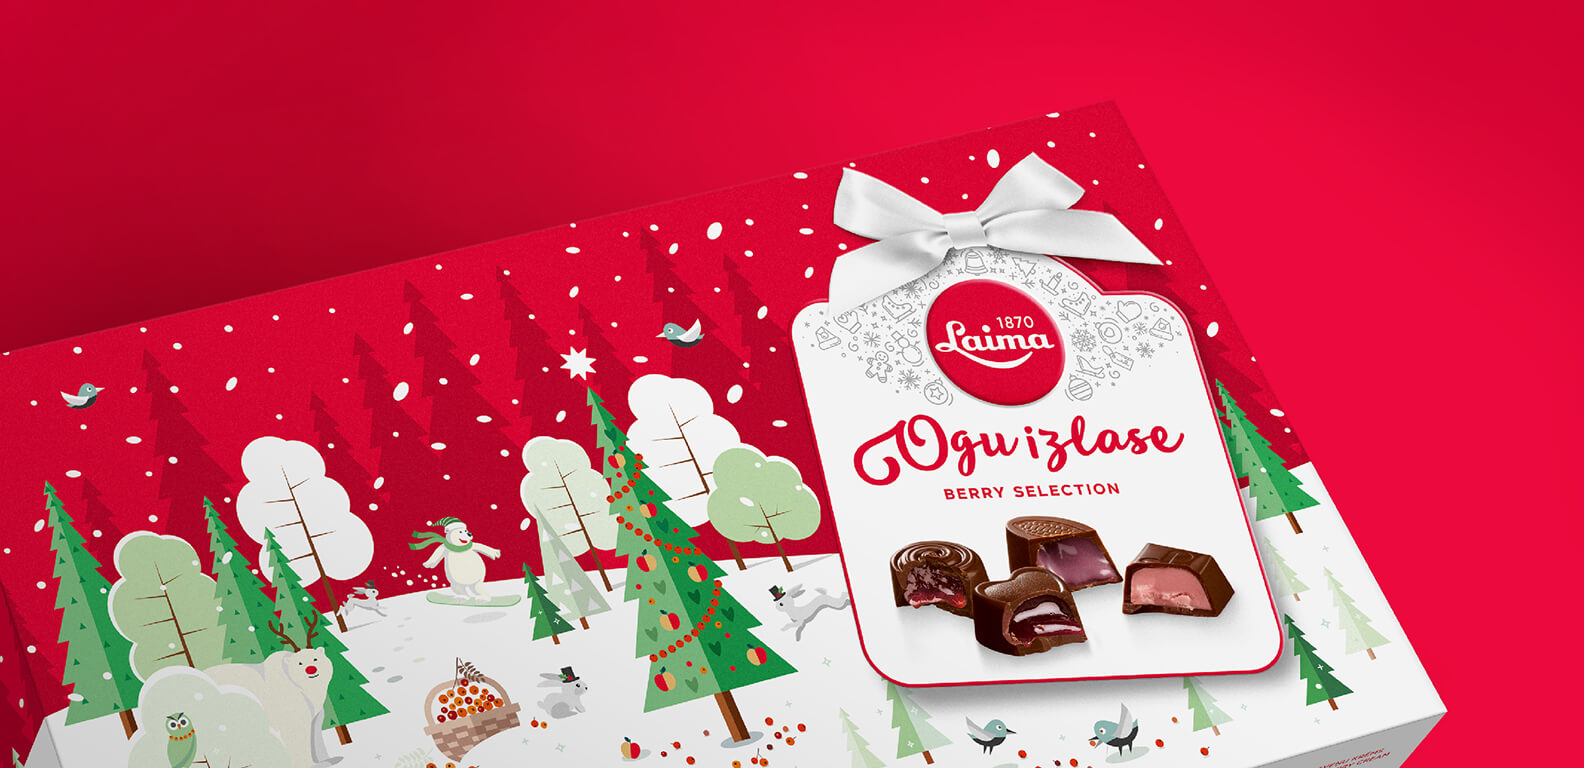 Laima Christmas 2016 - packaging design